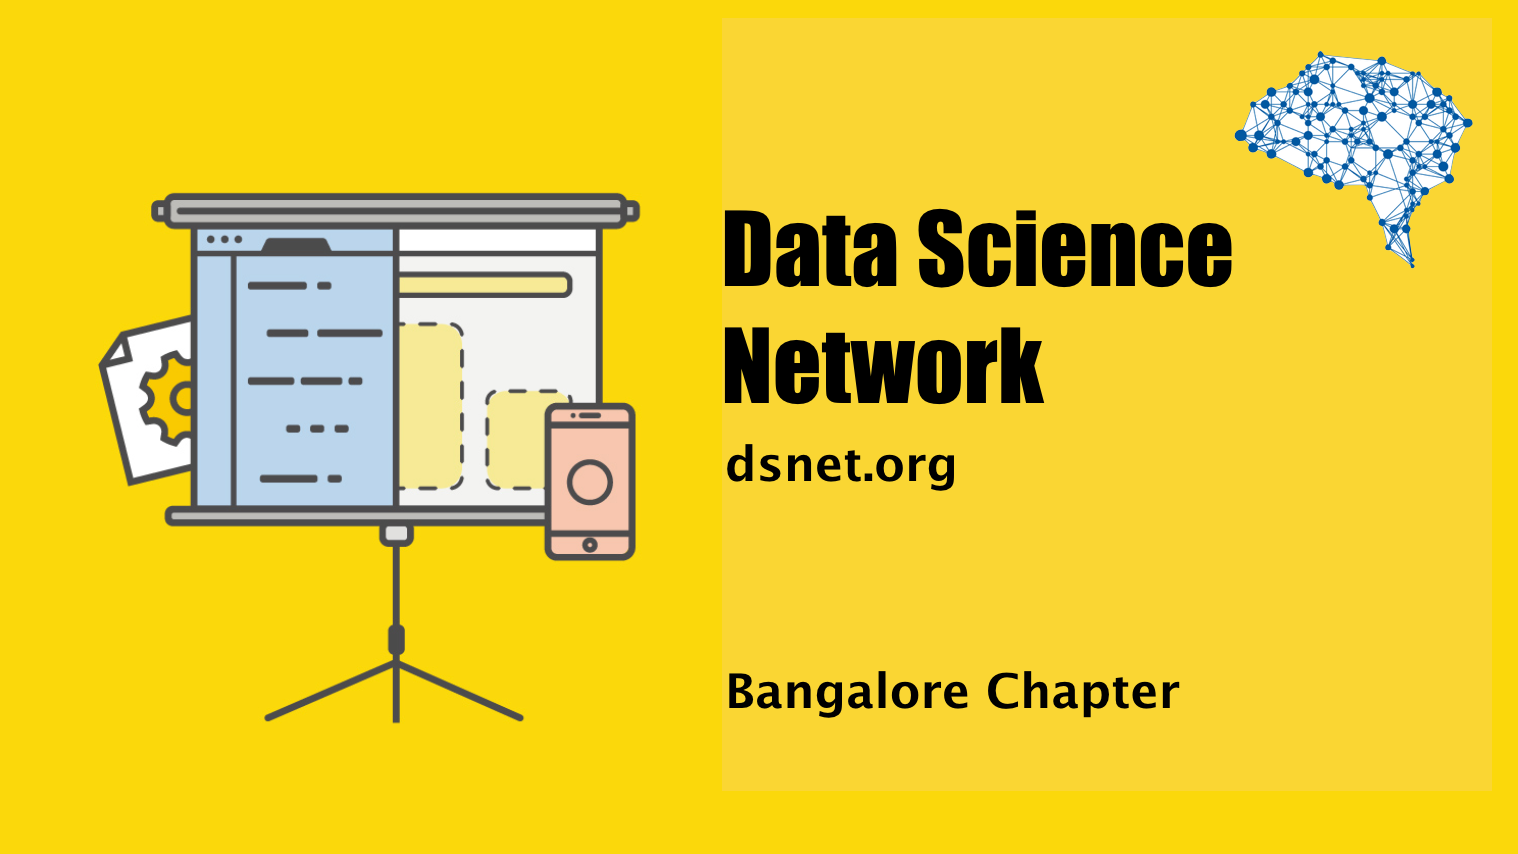 Data Science Network (dsnet.org)